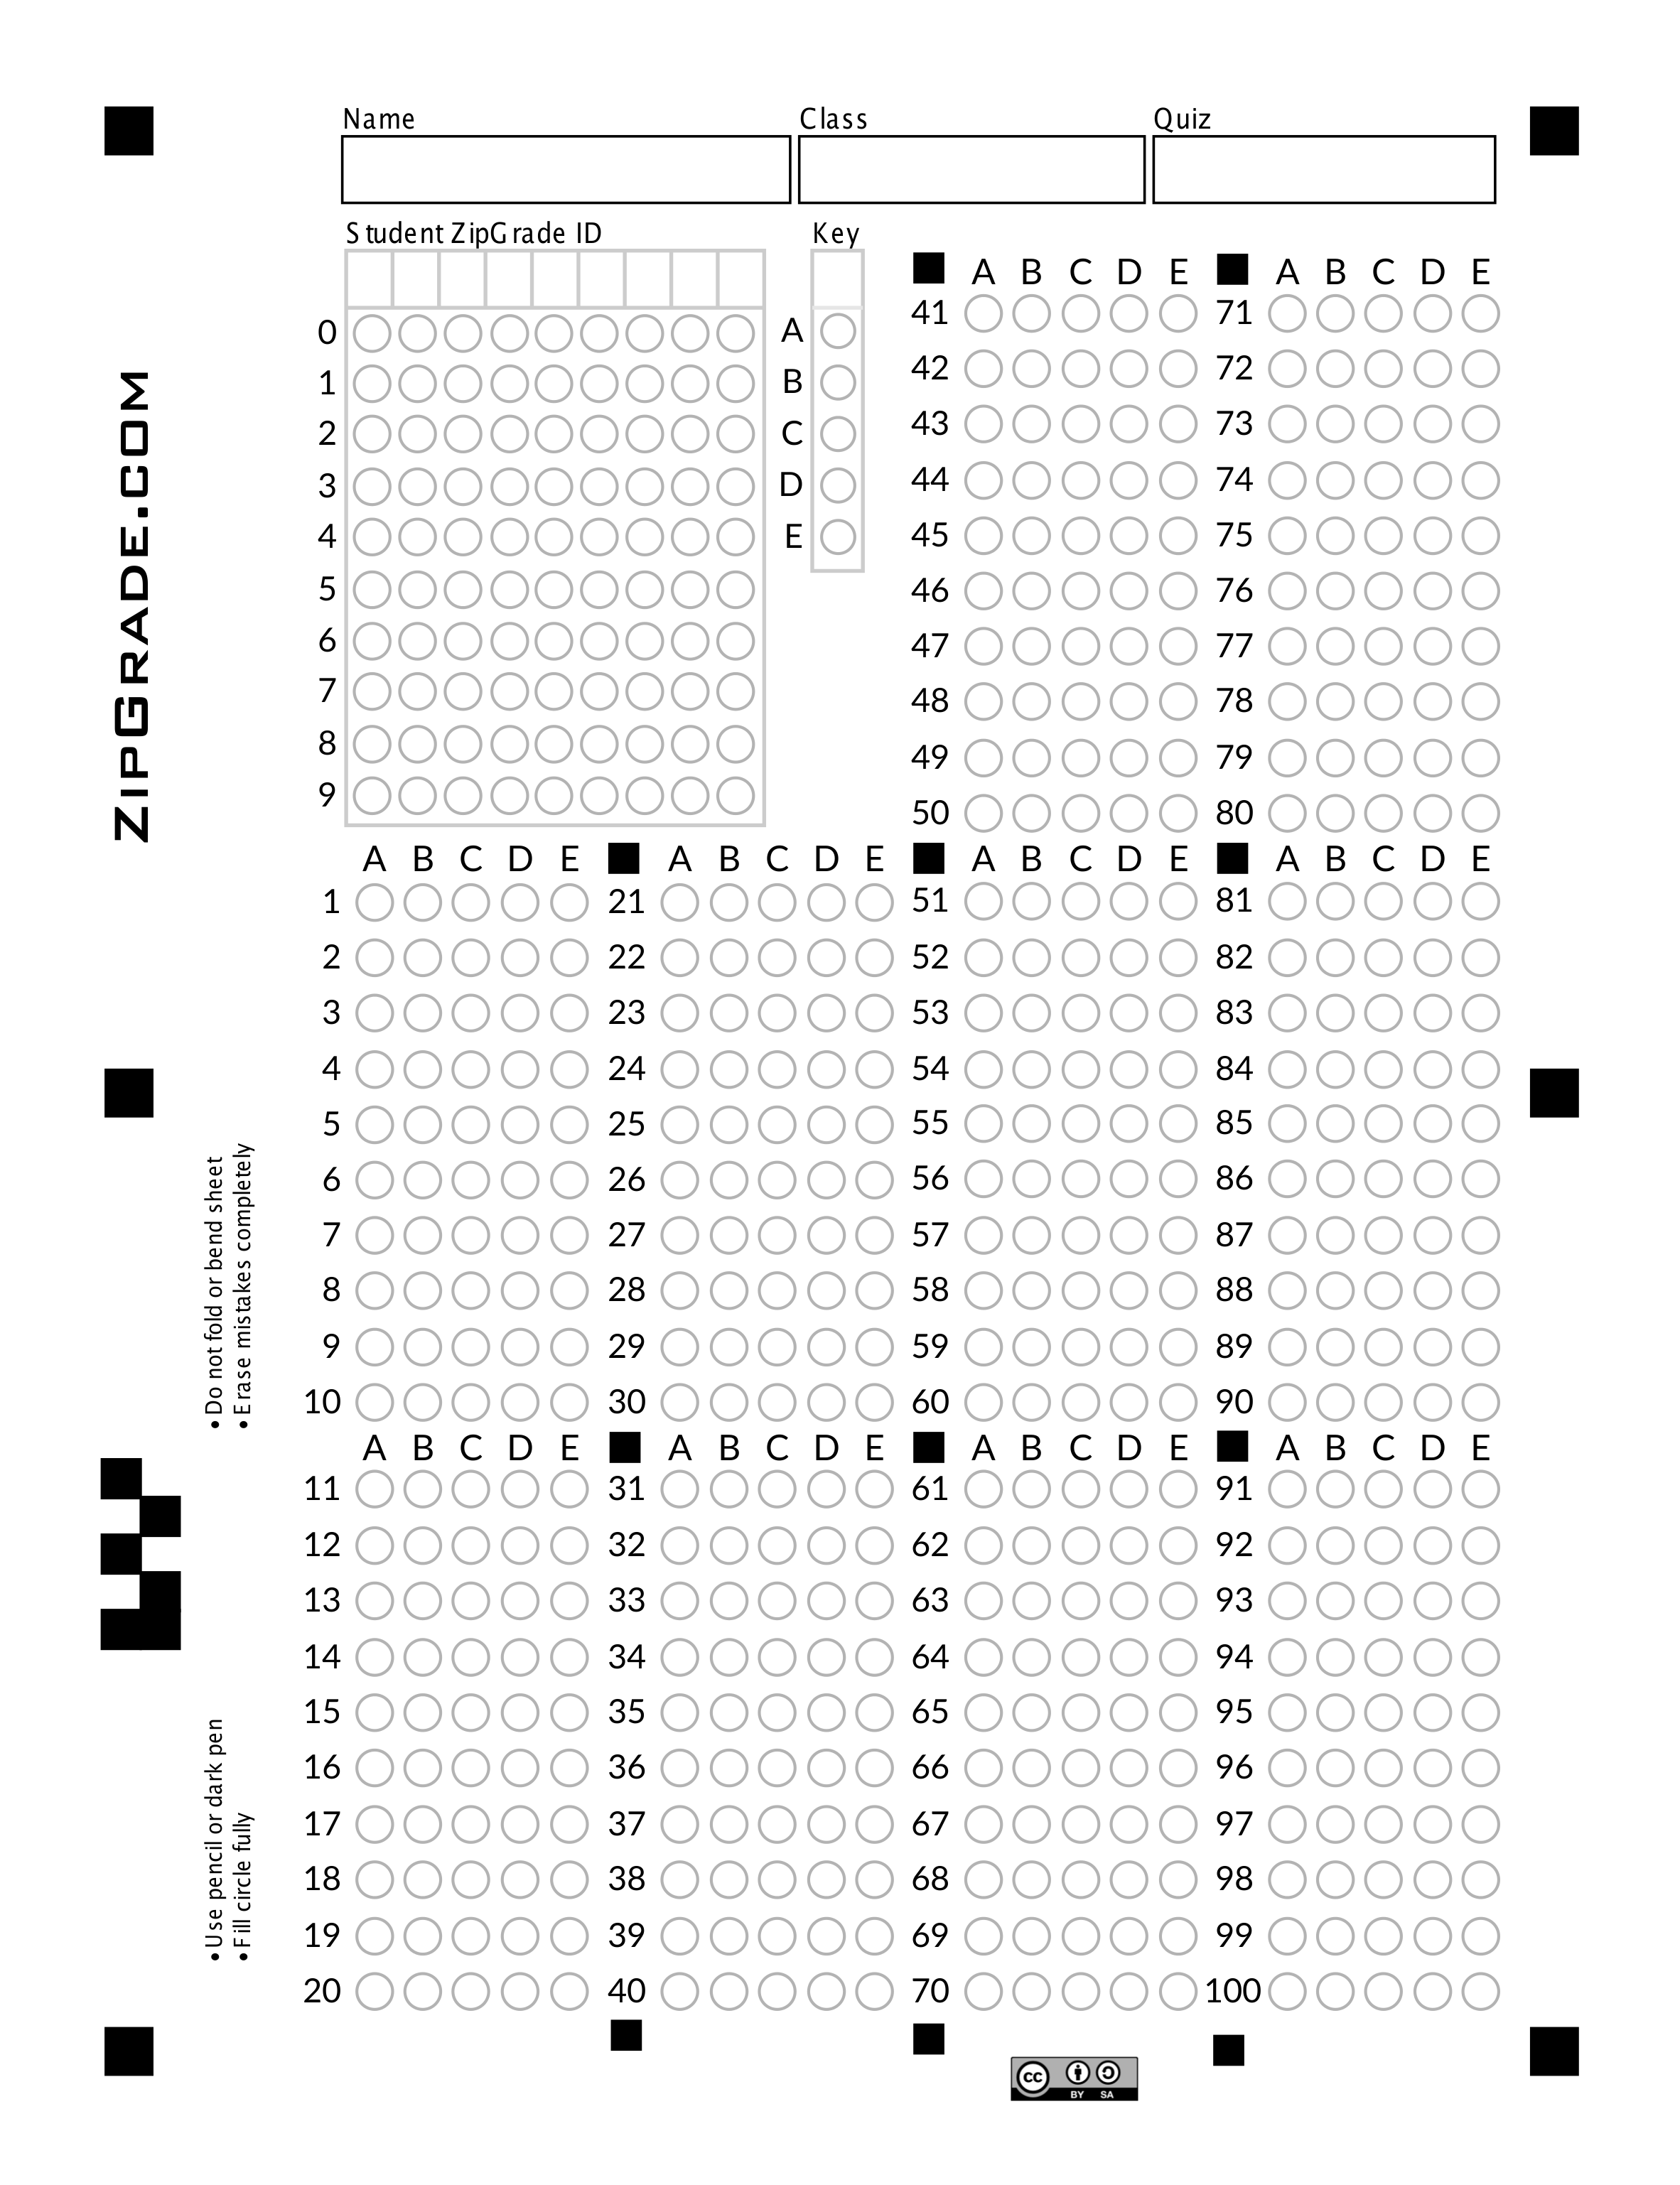 image about Printable Scantron Form named ZipGrade: Alternative Sheet Kinds